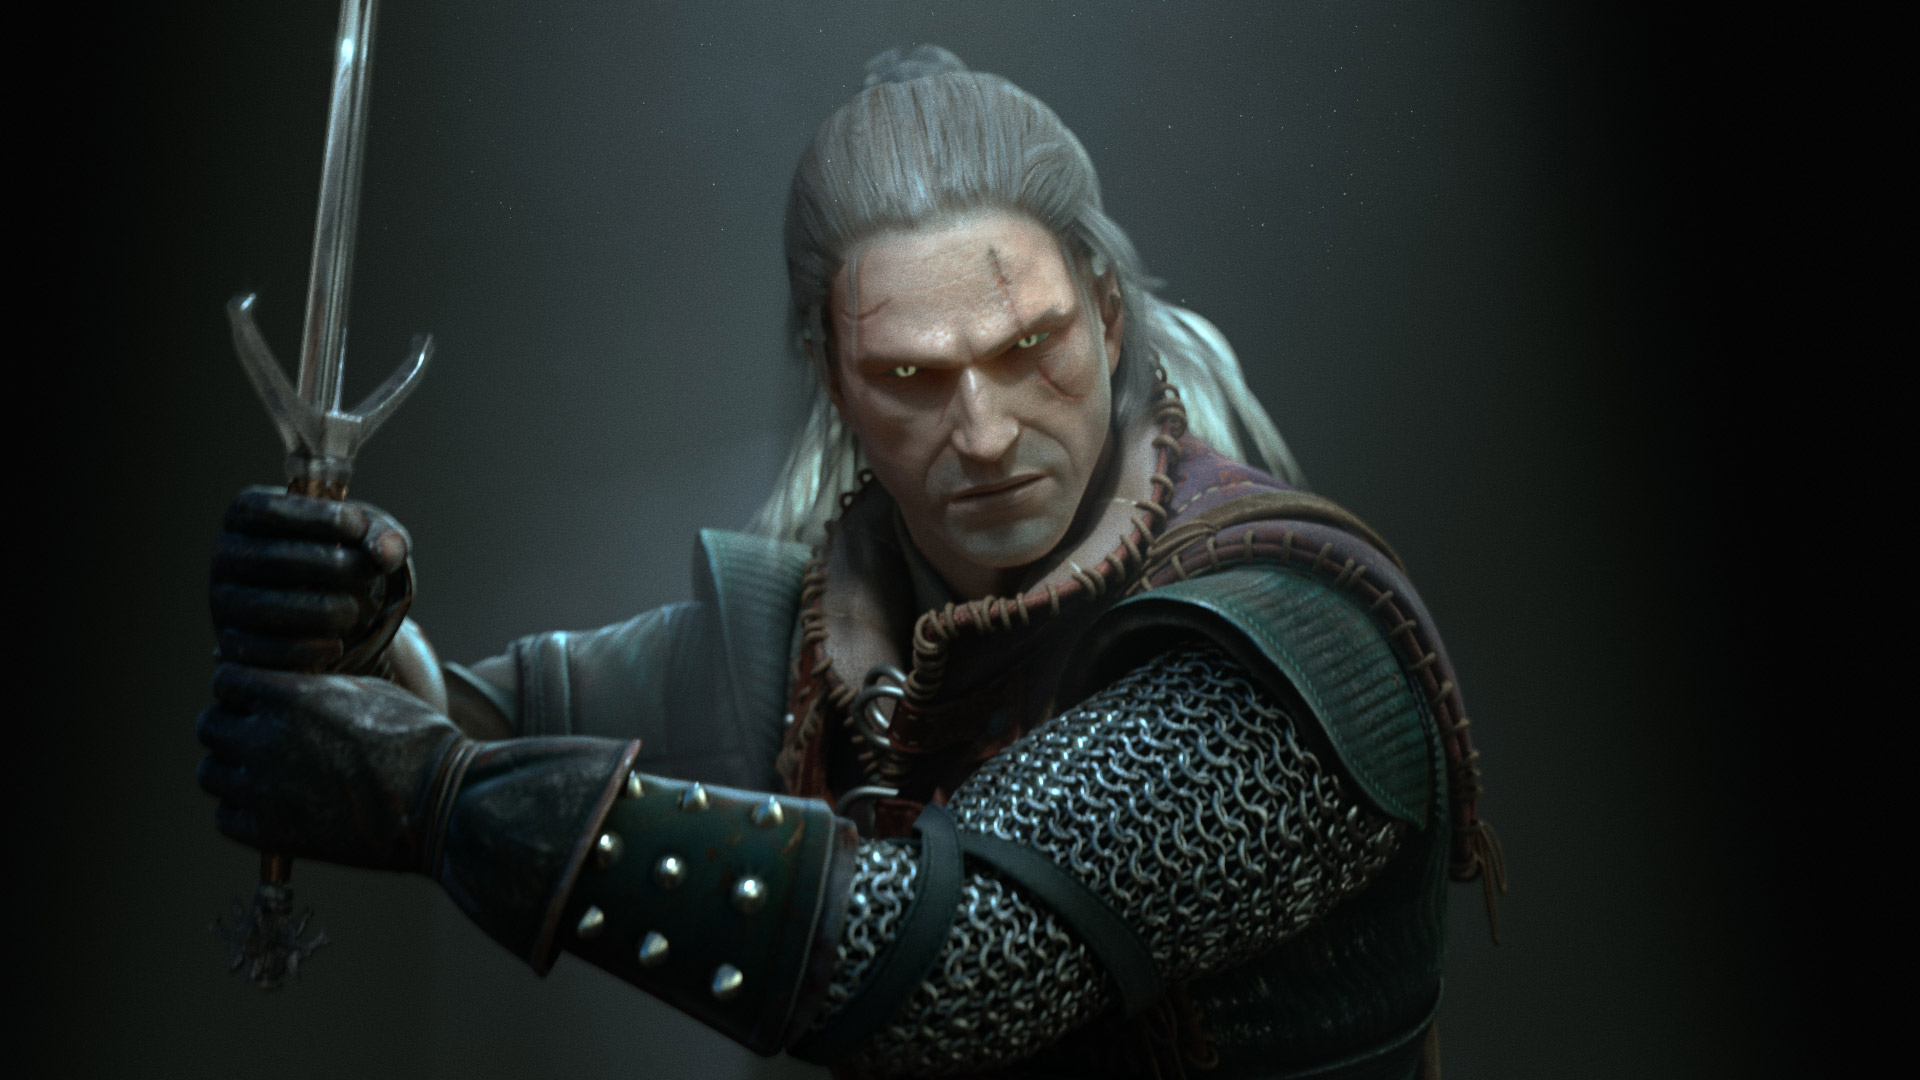 The Witcher 2 Wallpaper in 1920x1080